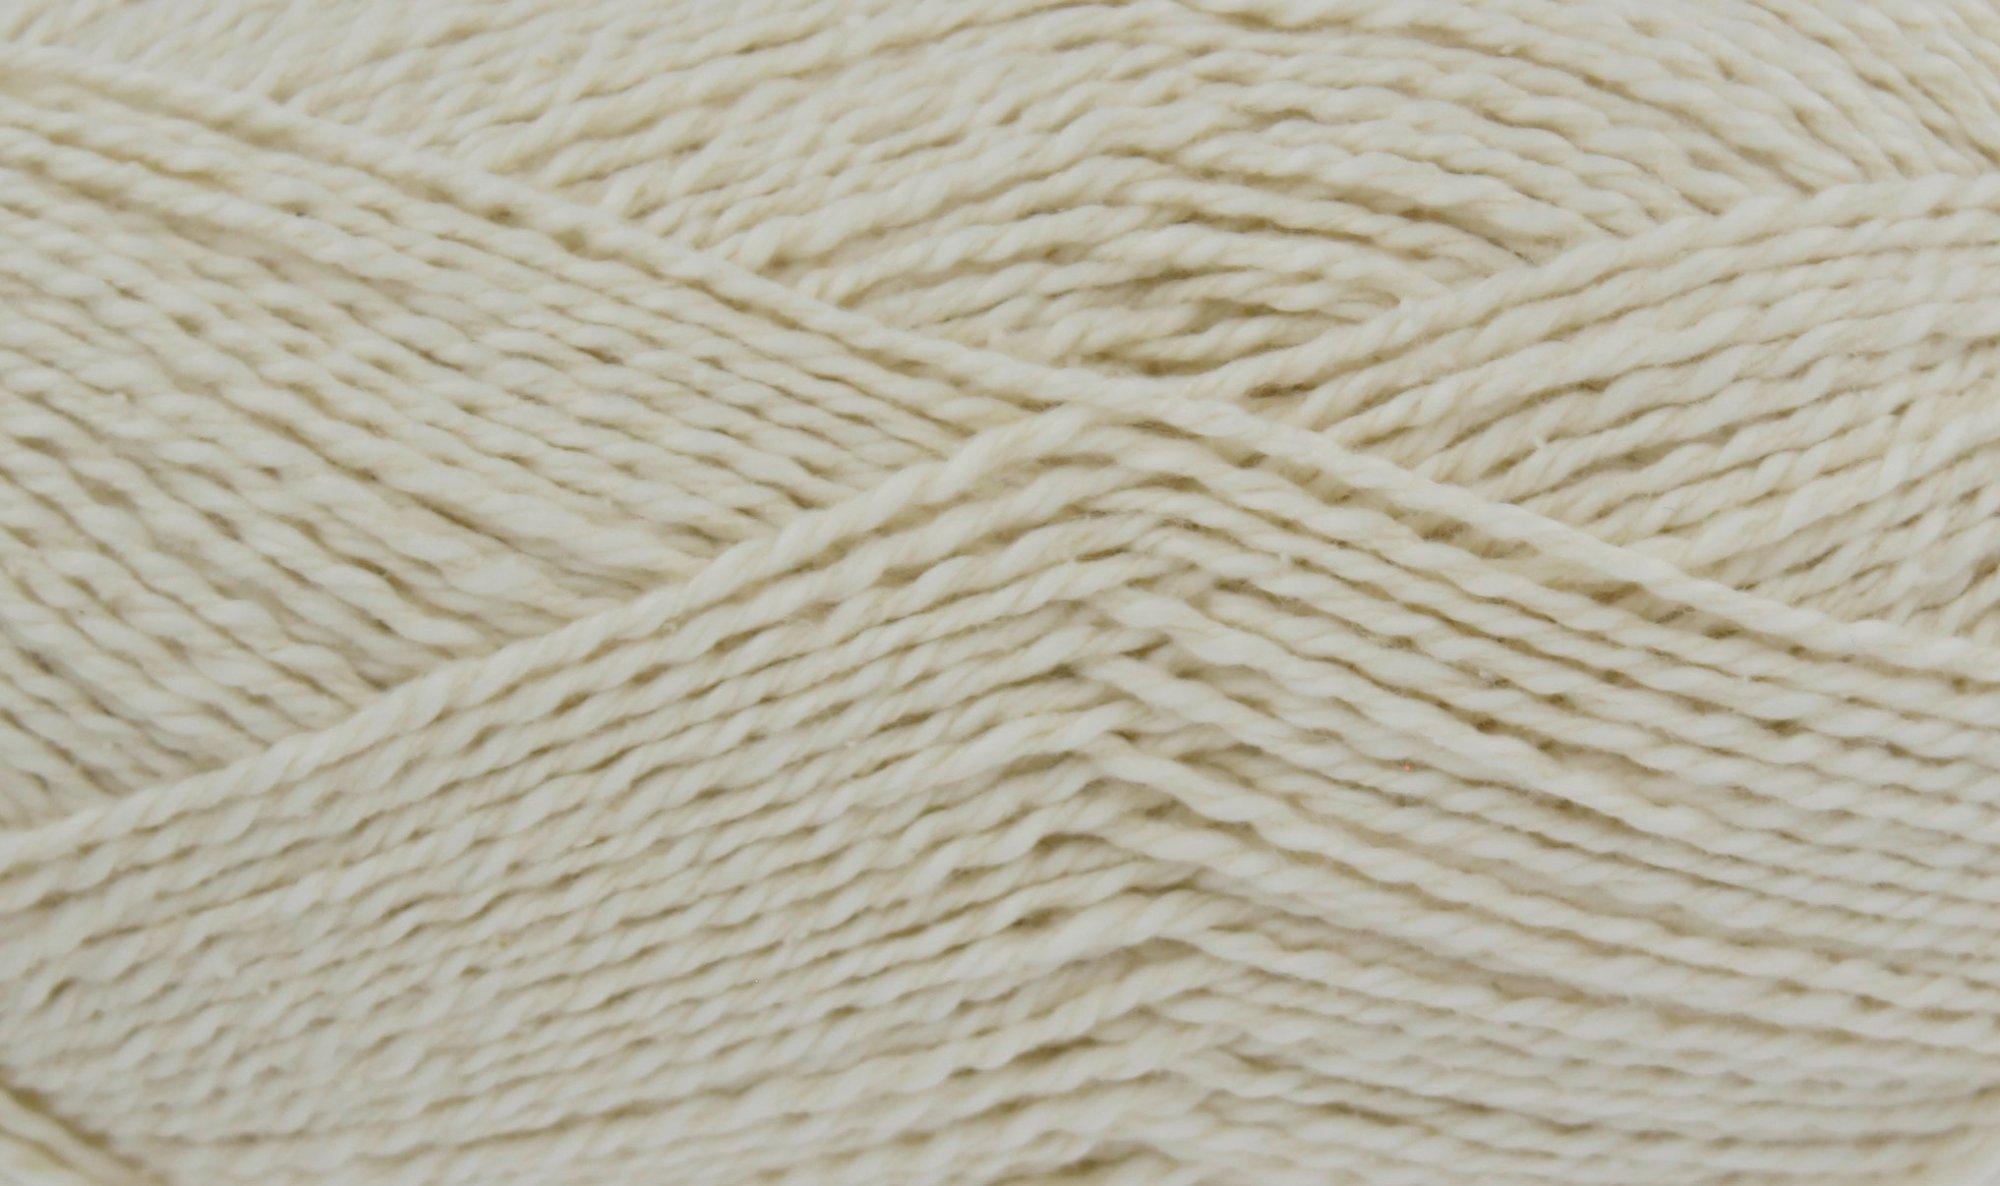 King Cole - Finesse Cotton Silk DK - 50g - Assorted Colors